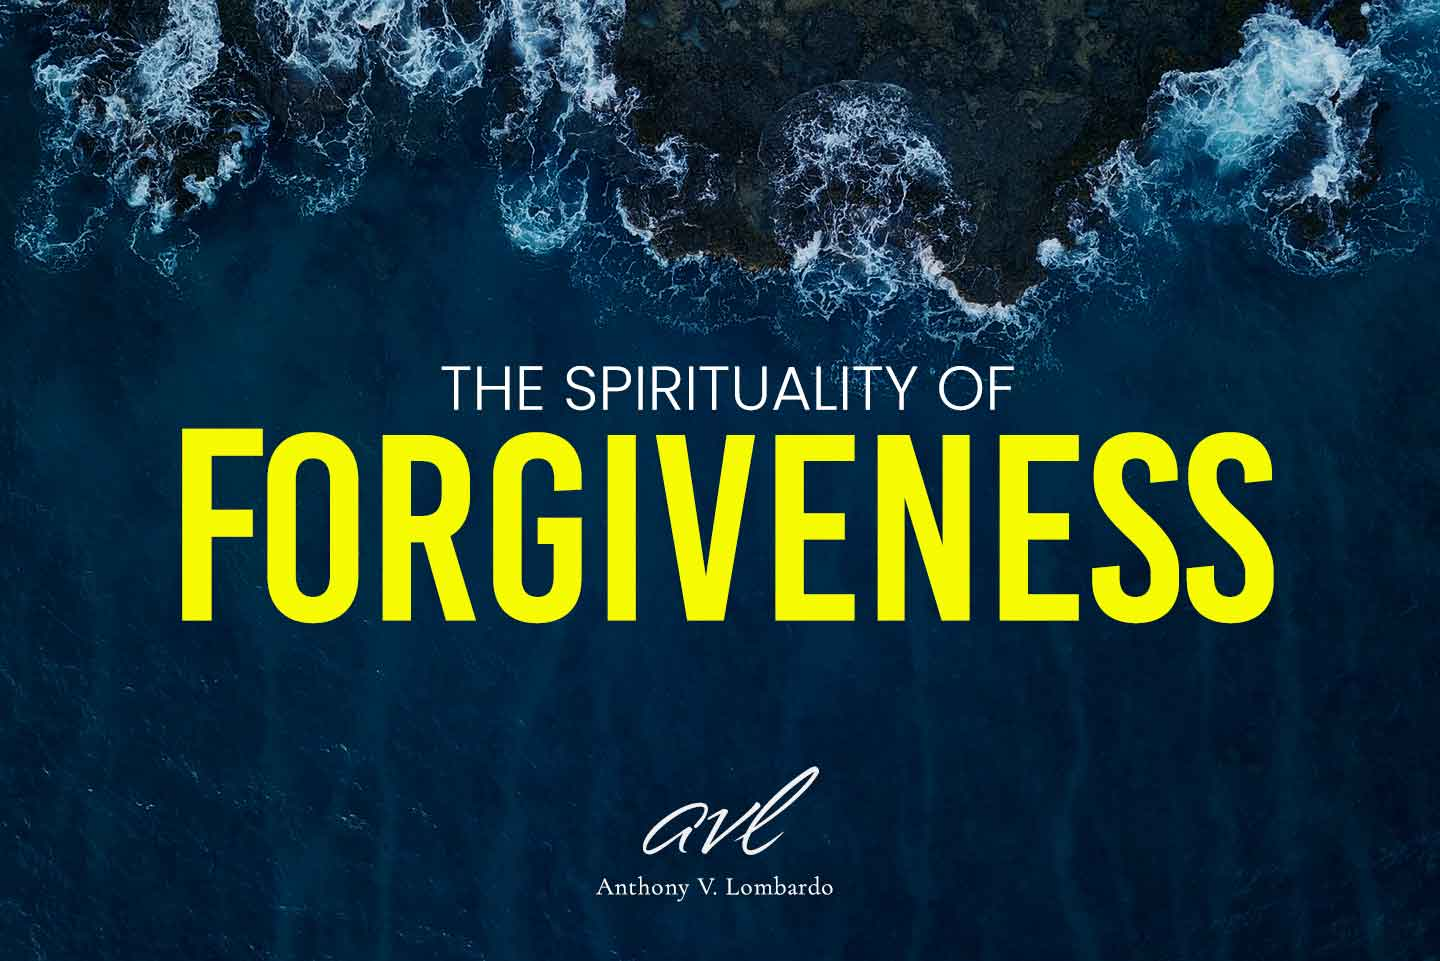 The Spirituality of Forgiveness